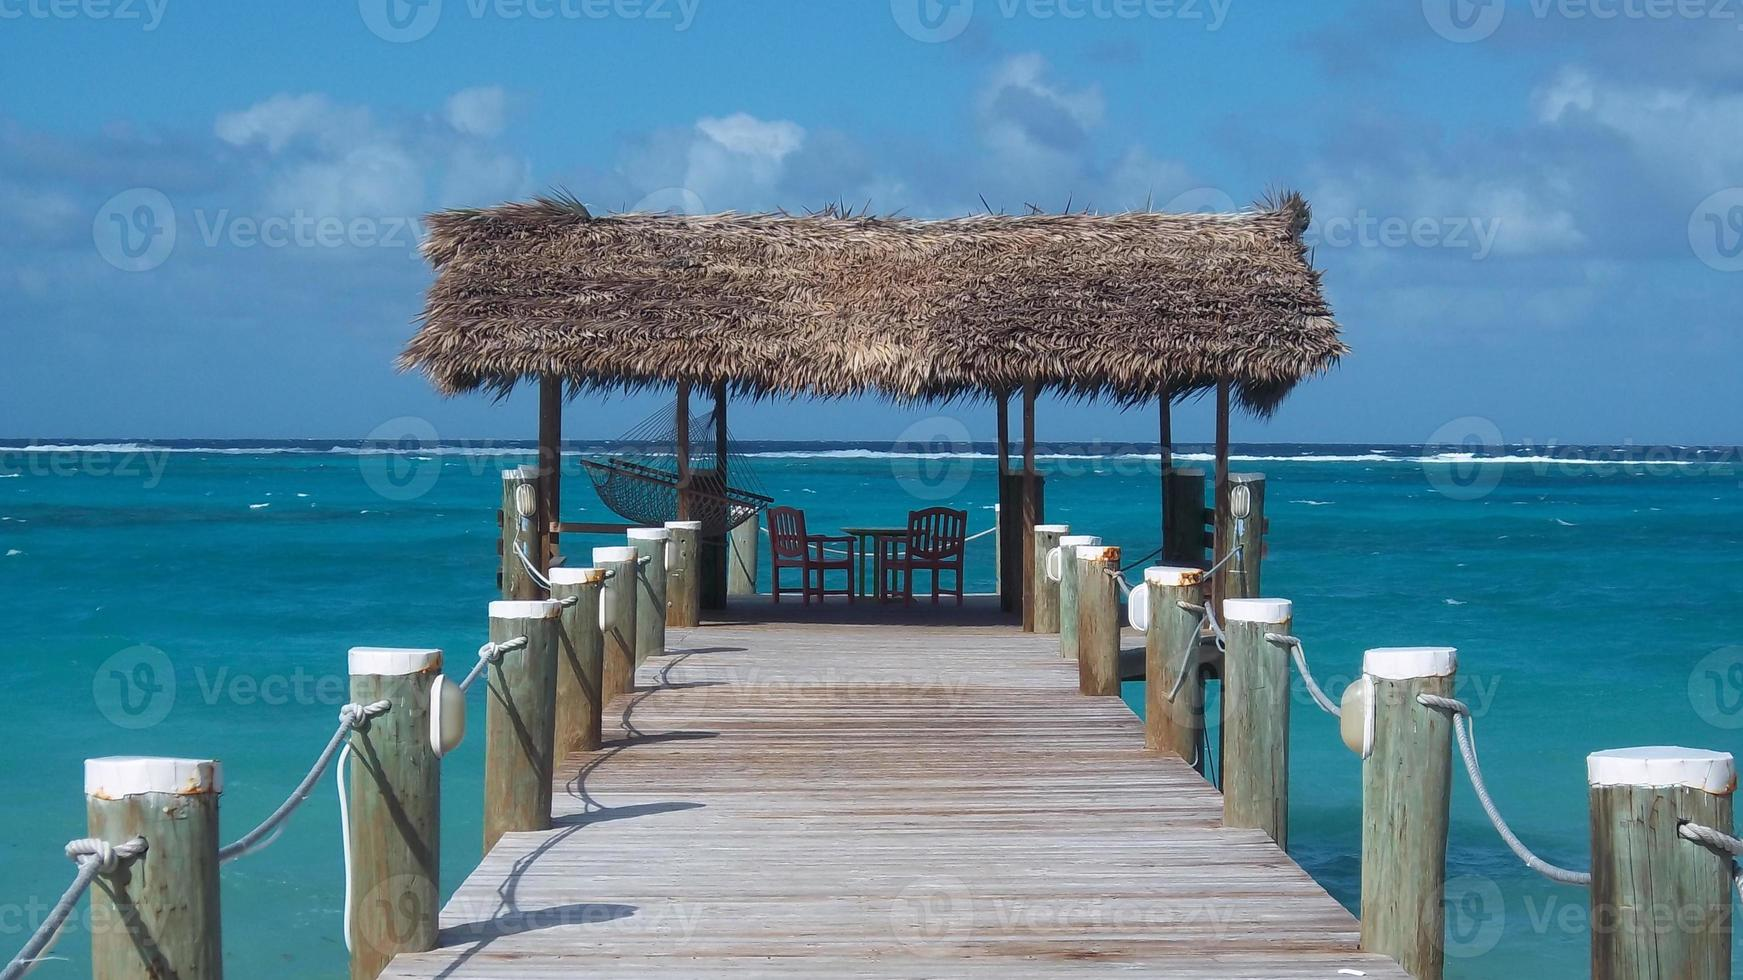 Dock Going out to Caribbean Sea photo